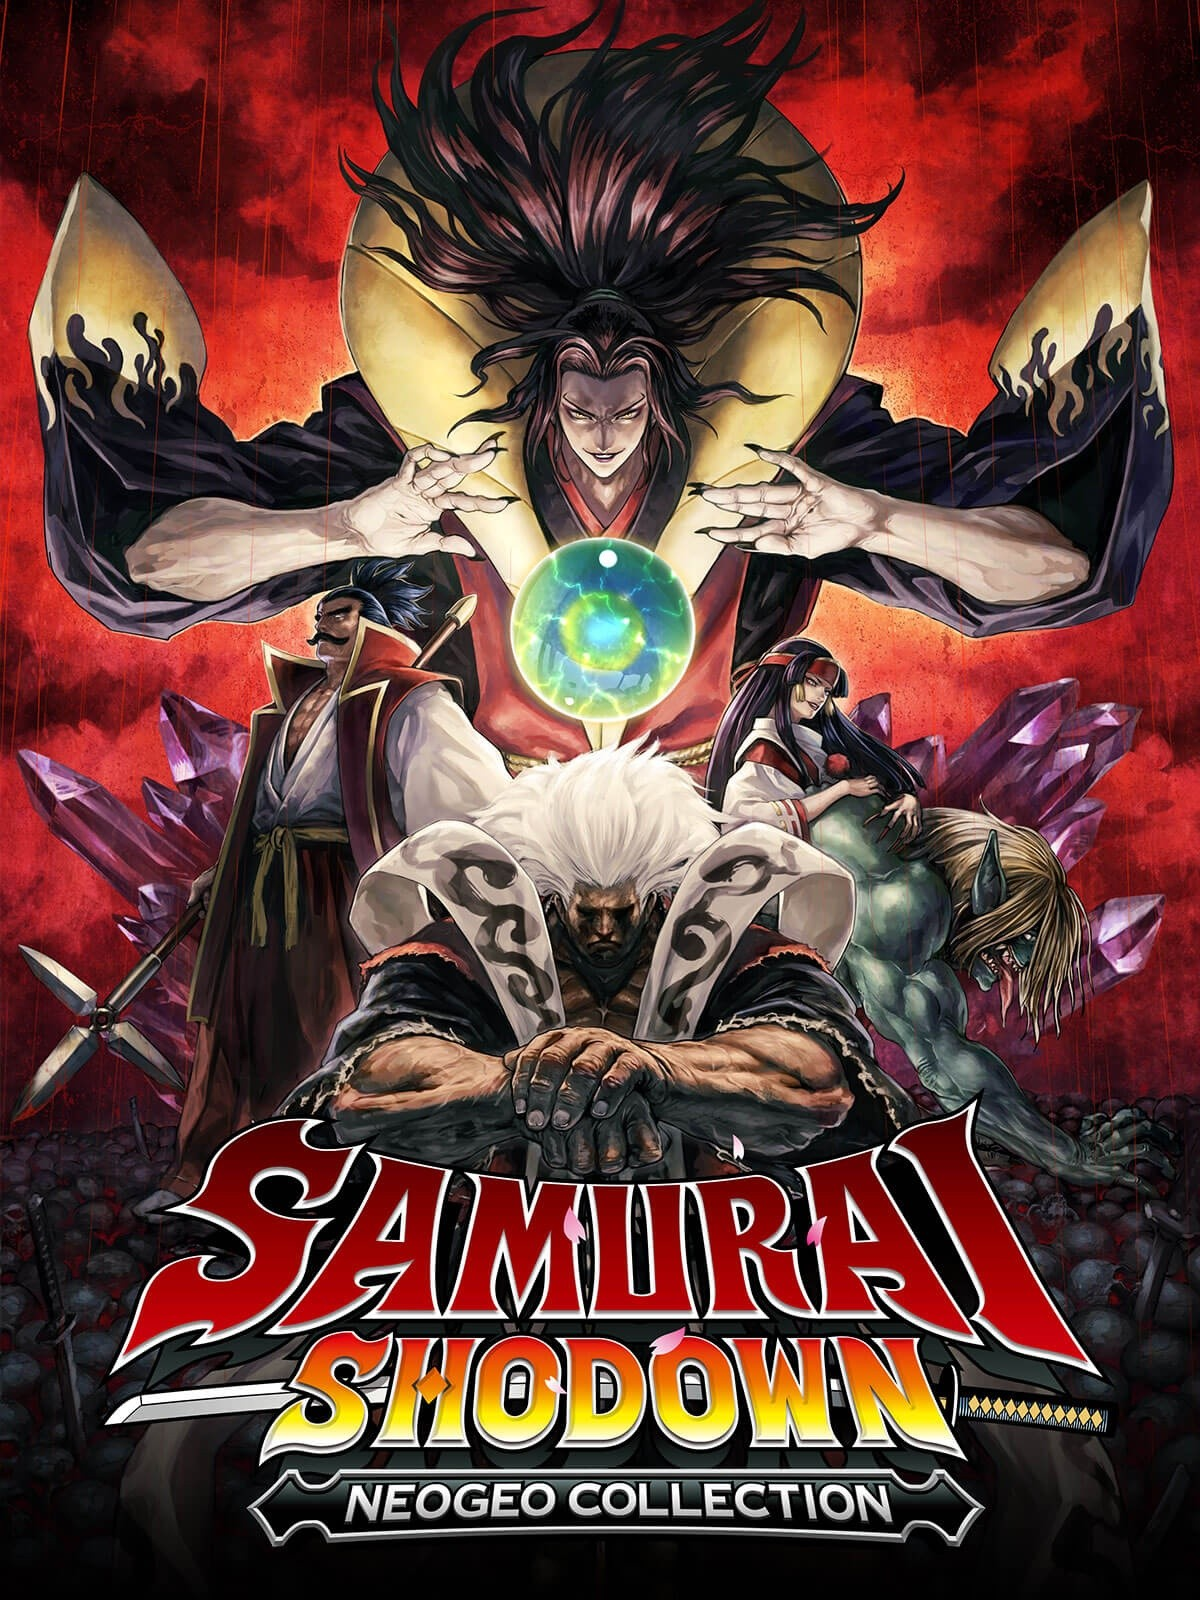 Descargar Samurai Shodown NEOGEO Collection PC Cover Caratula